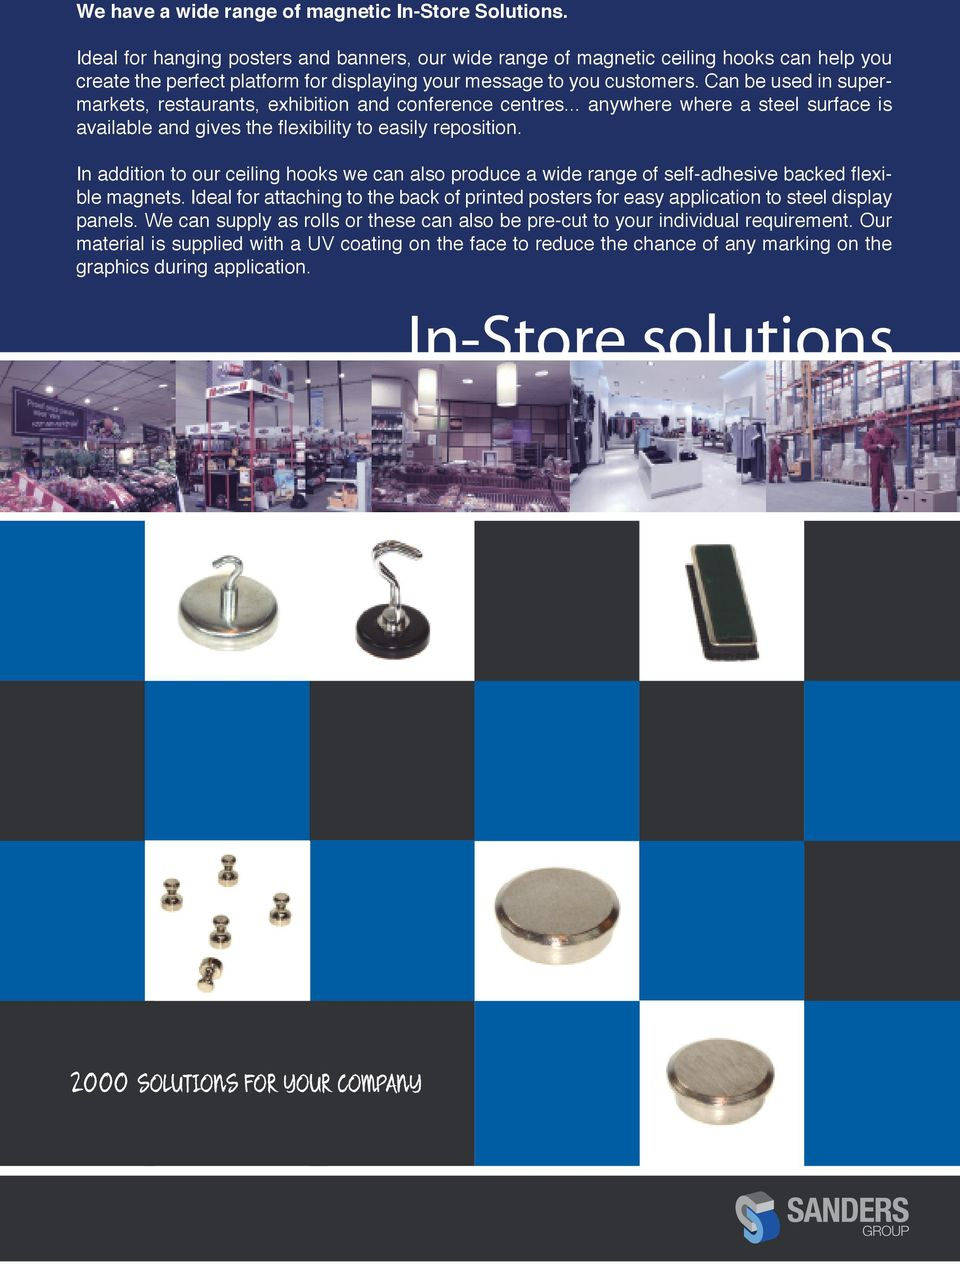 Can be used in supermarkets, restaurants, exhibition and conference centres... anywhere where a steel surface is available and gives the flexibility to easily reposition.